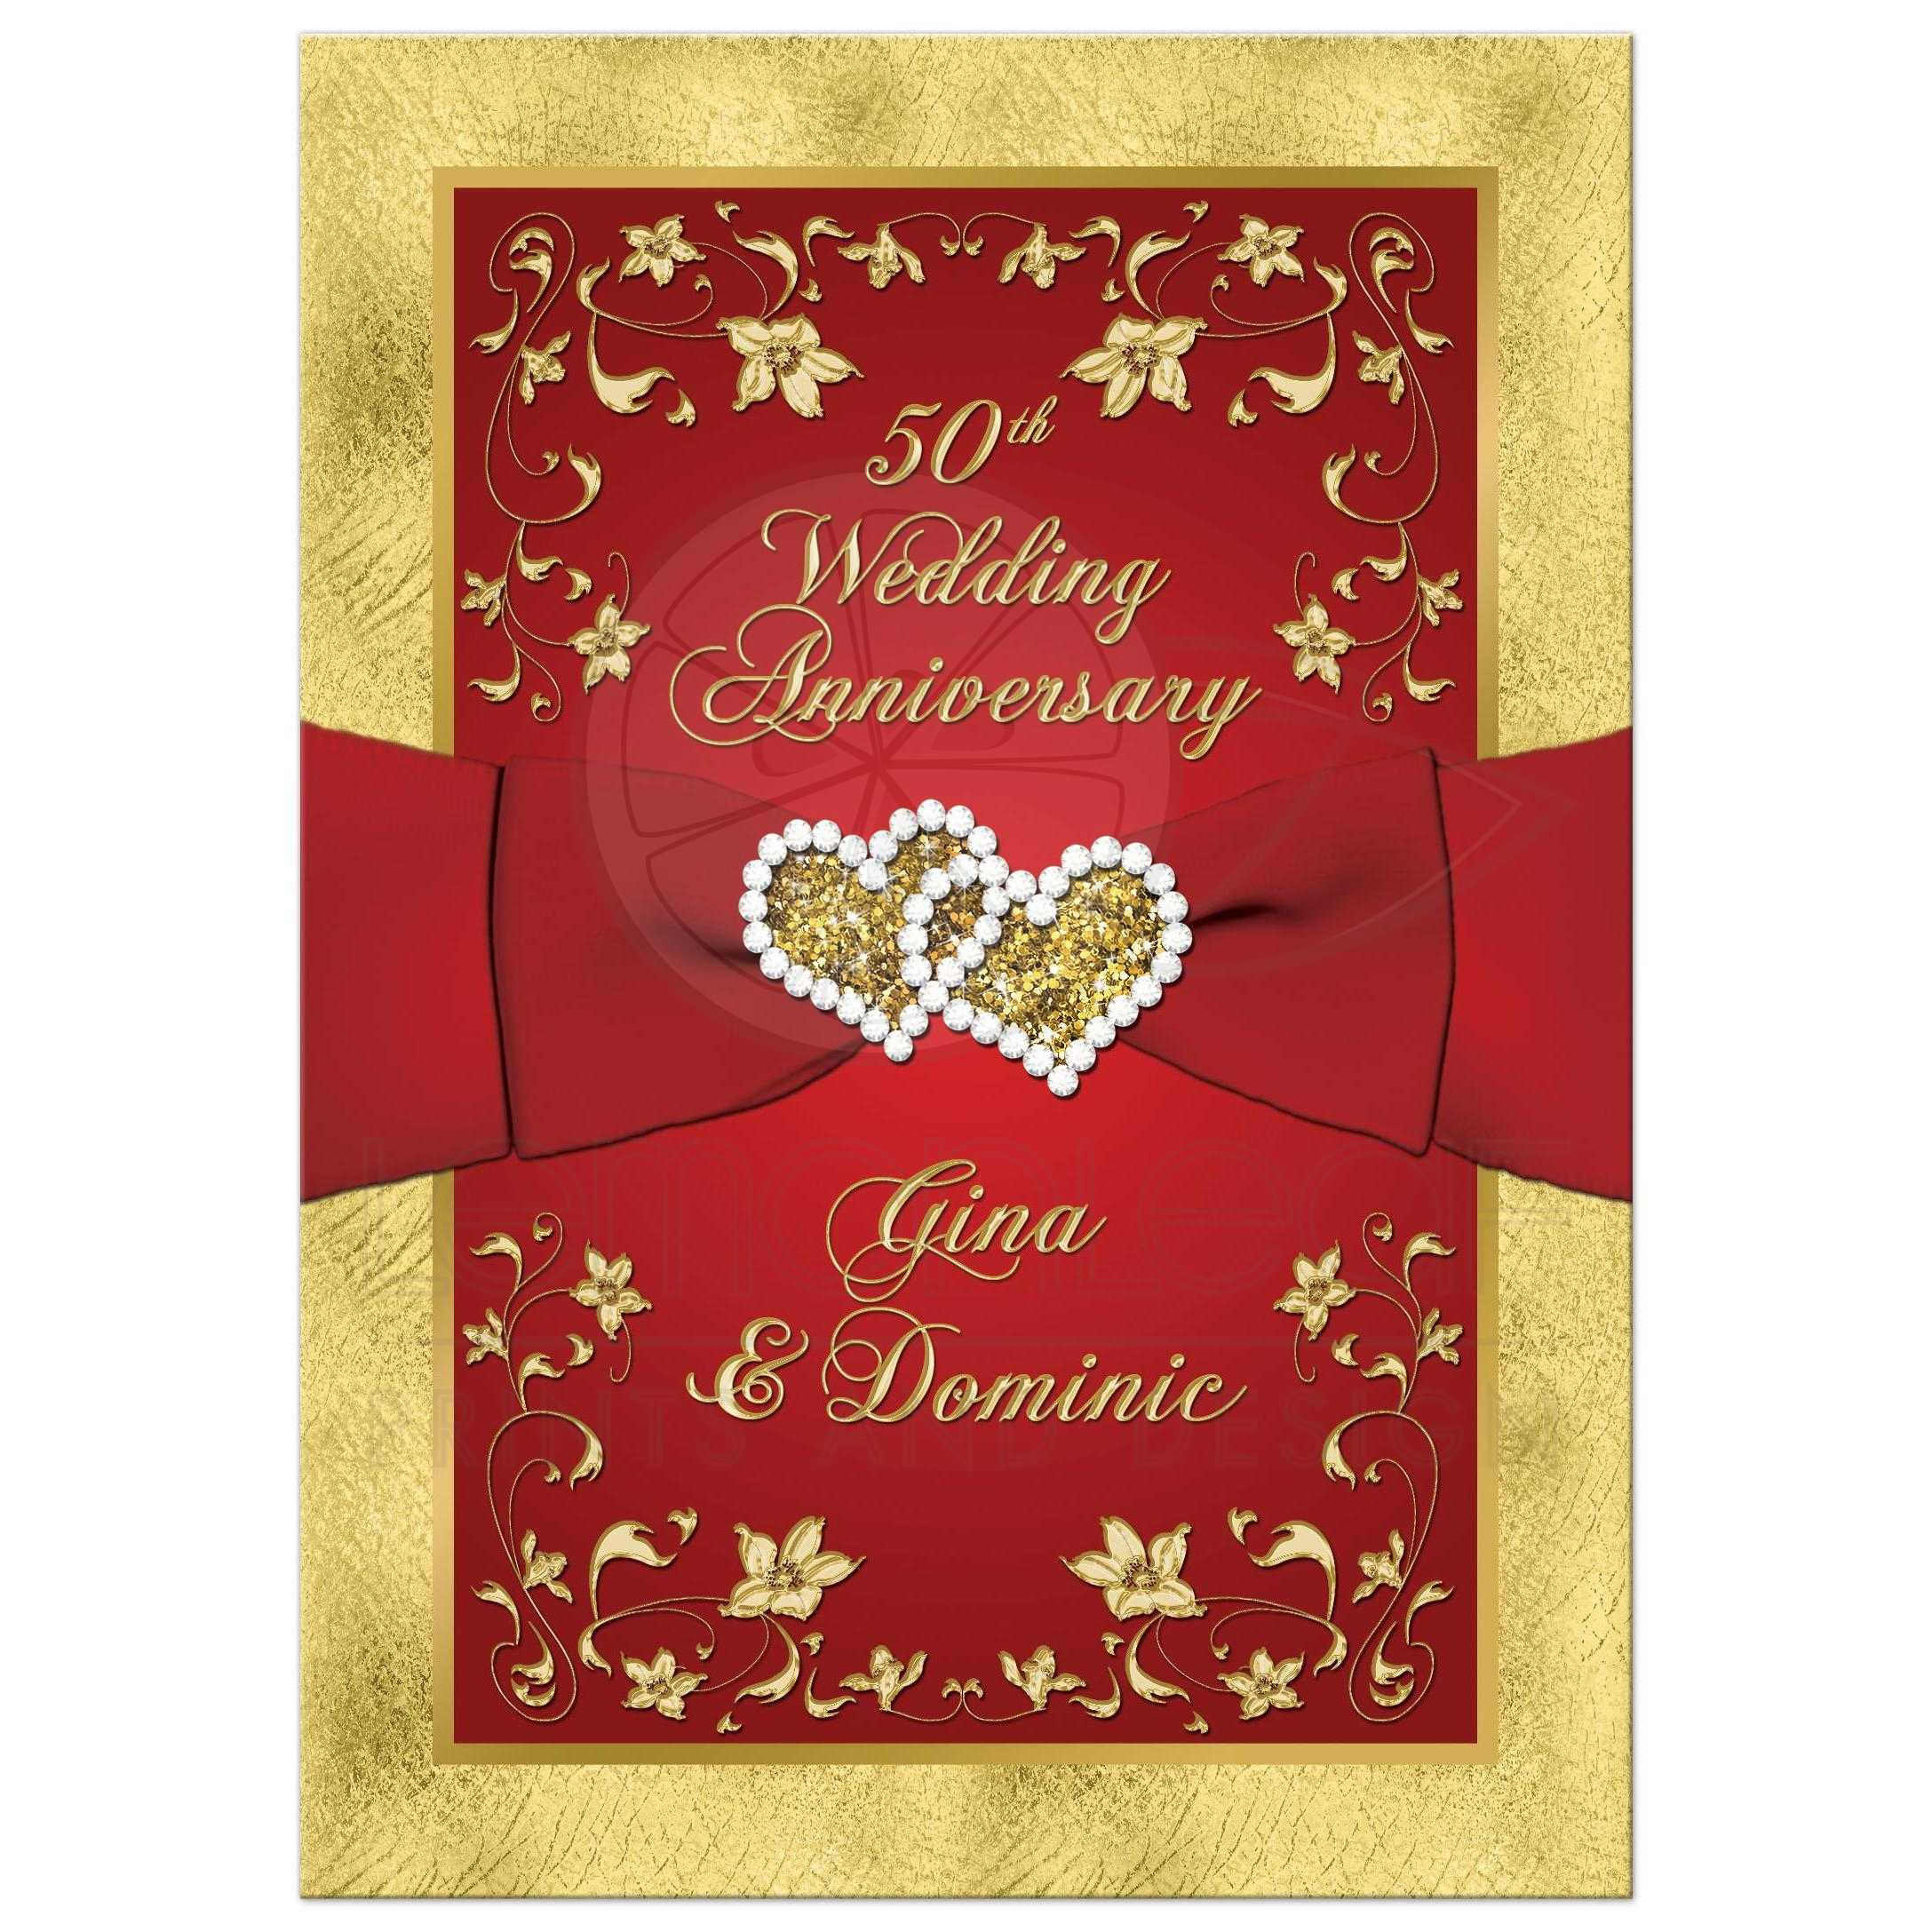 Great Red And Gold Floral 50th Wedding Anniversary Invitations With Ribbon,  Joined Hearts, ...